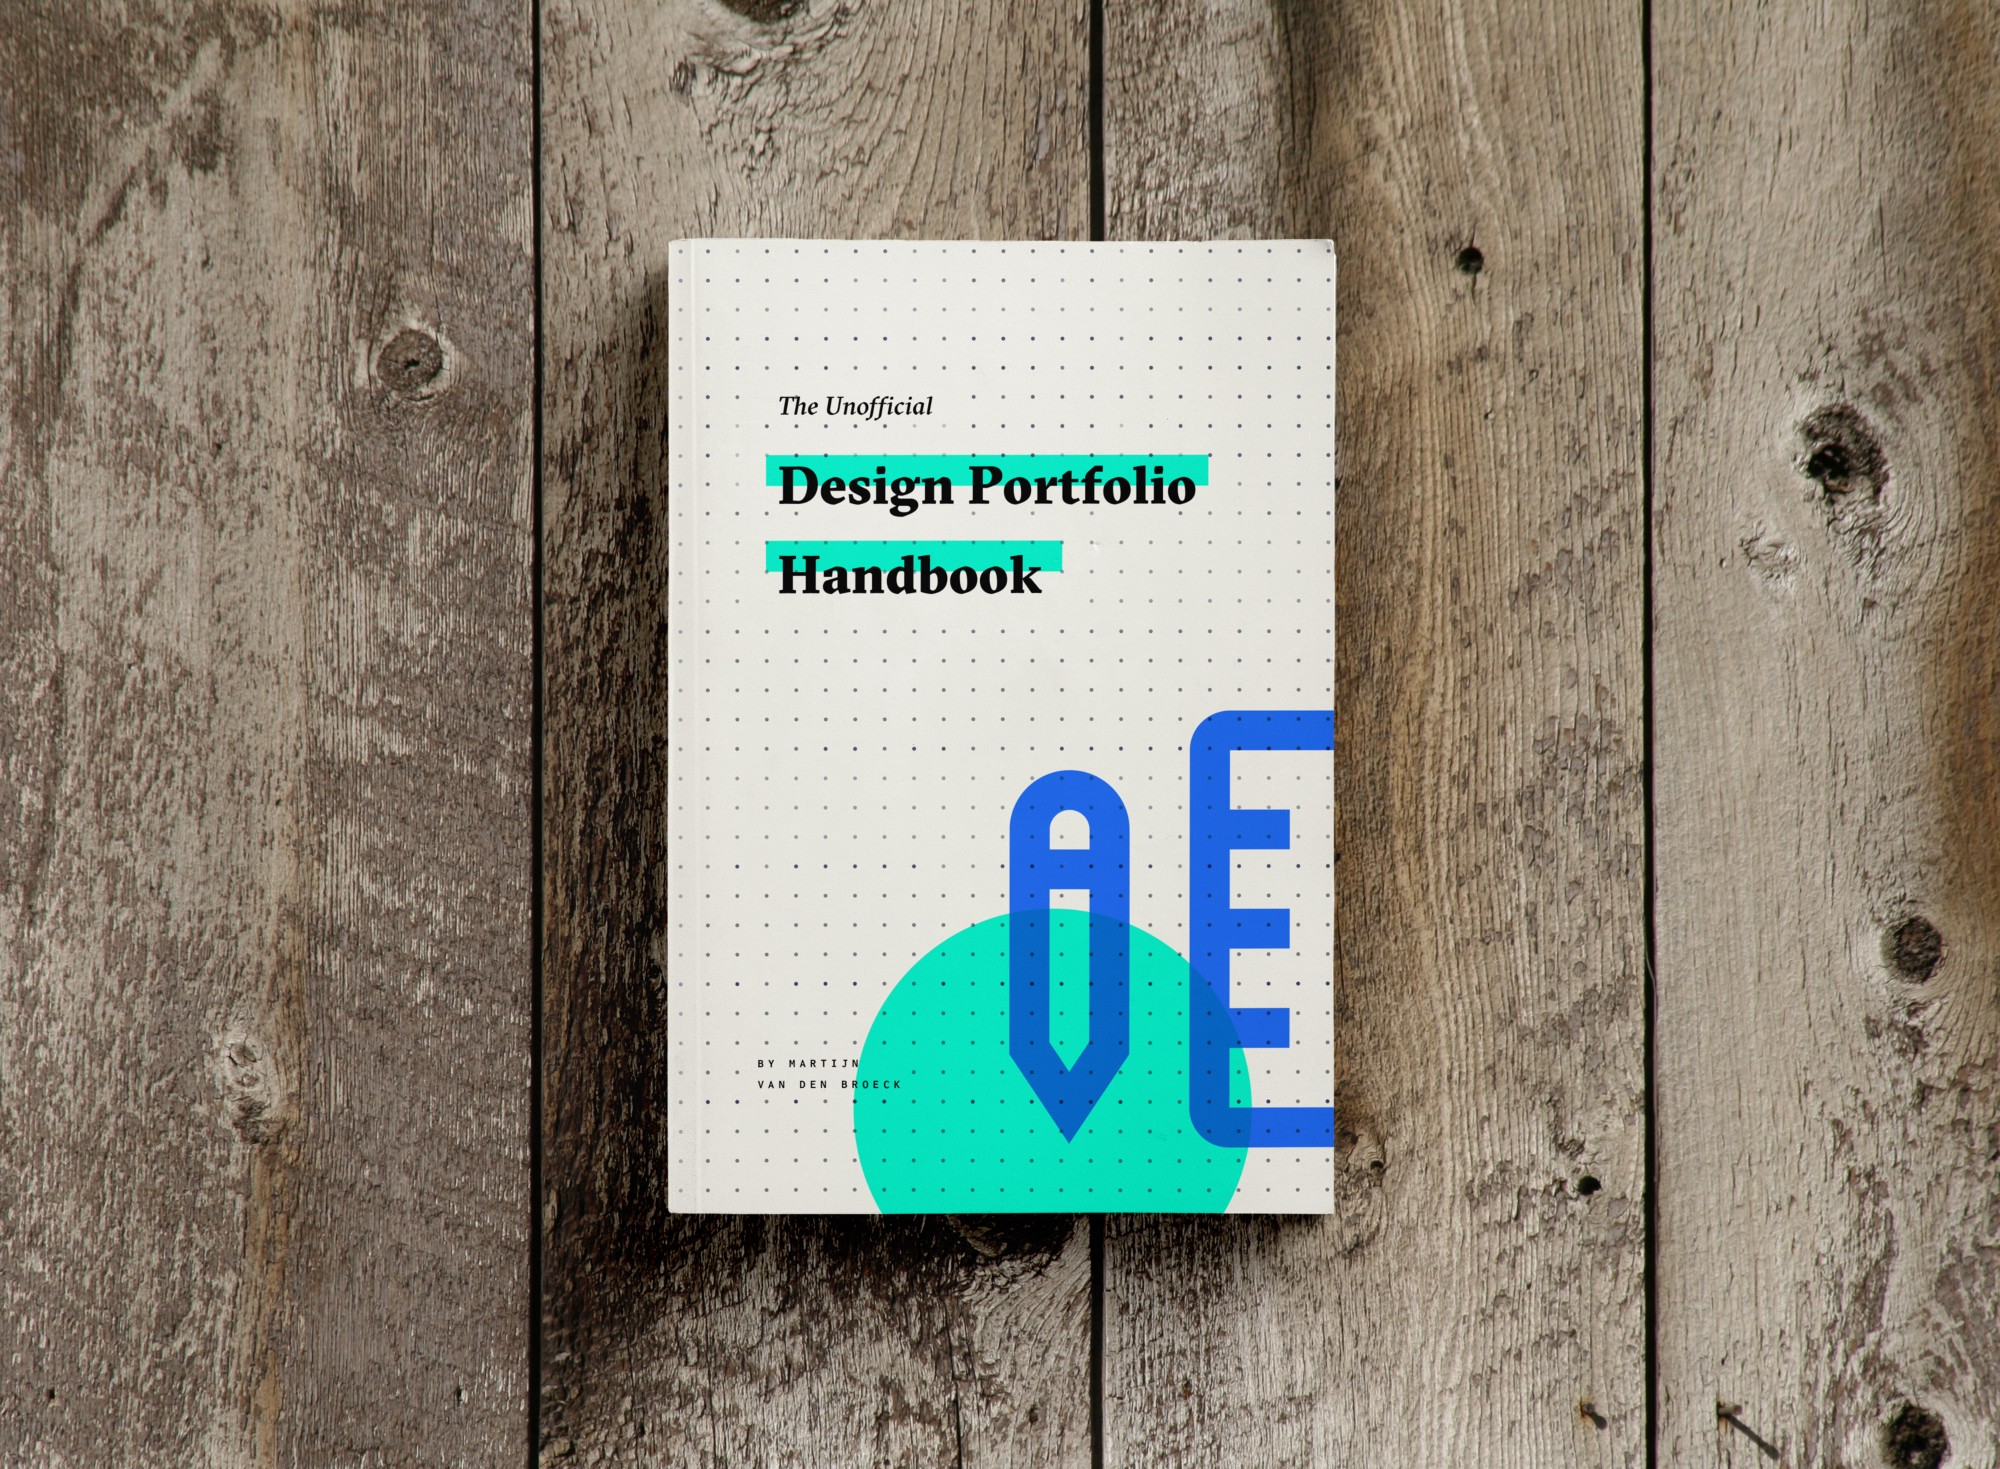 The Unofficial Design Portfolio Handbook